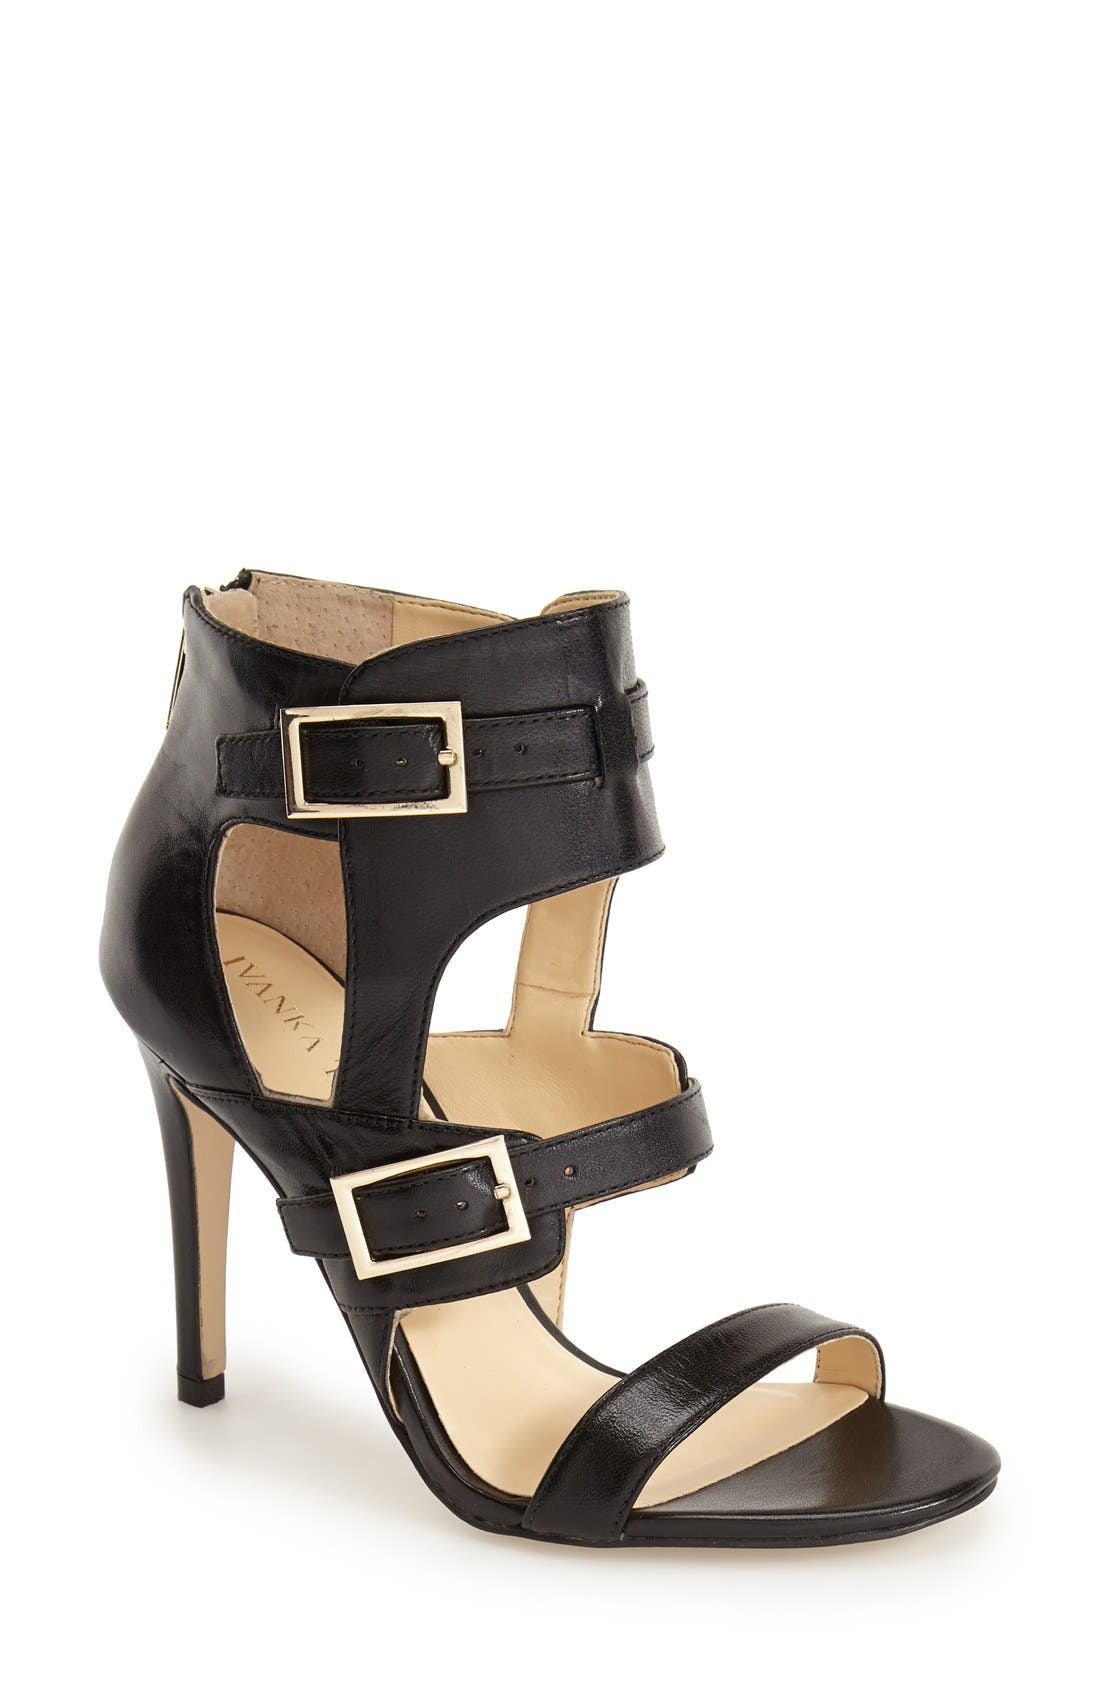 Alternate Image 1 Selected - Ivanka Trump 'Dolanu' Strappy Sandal (Women)